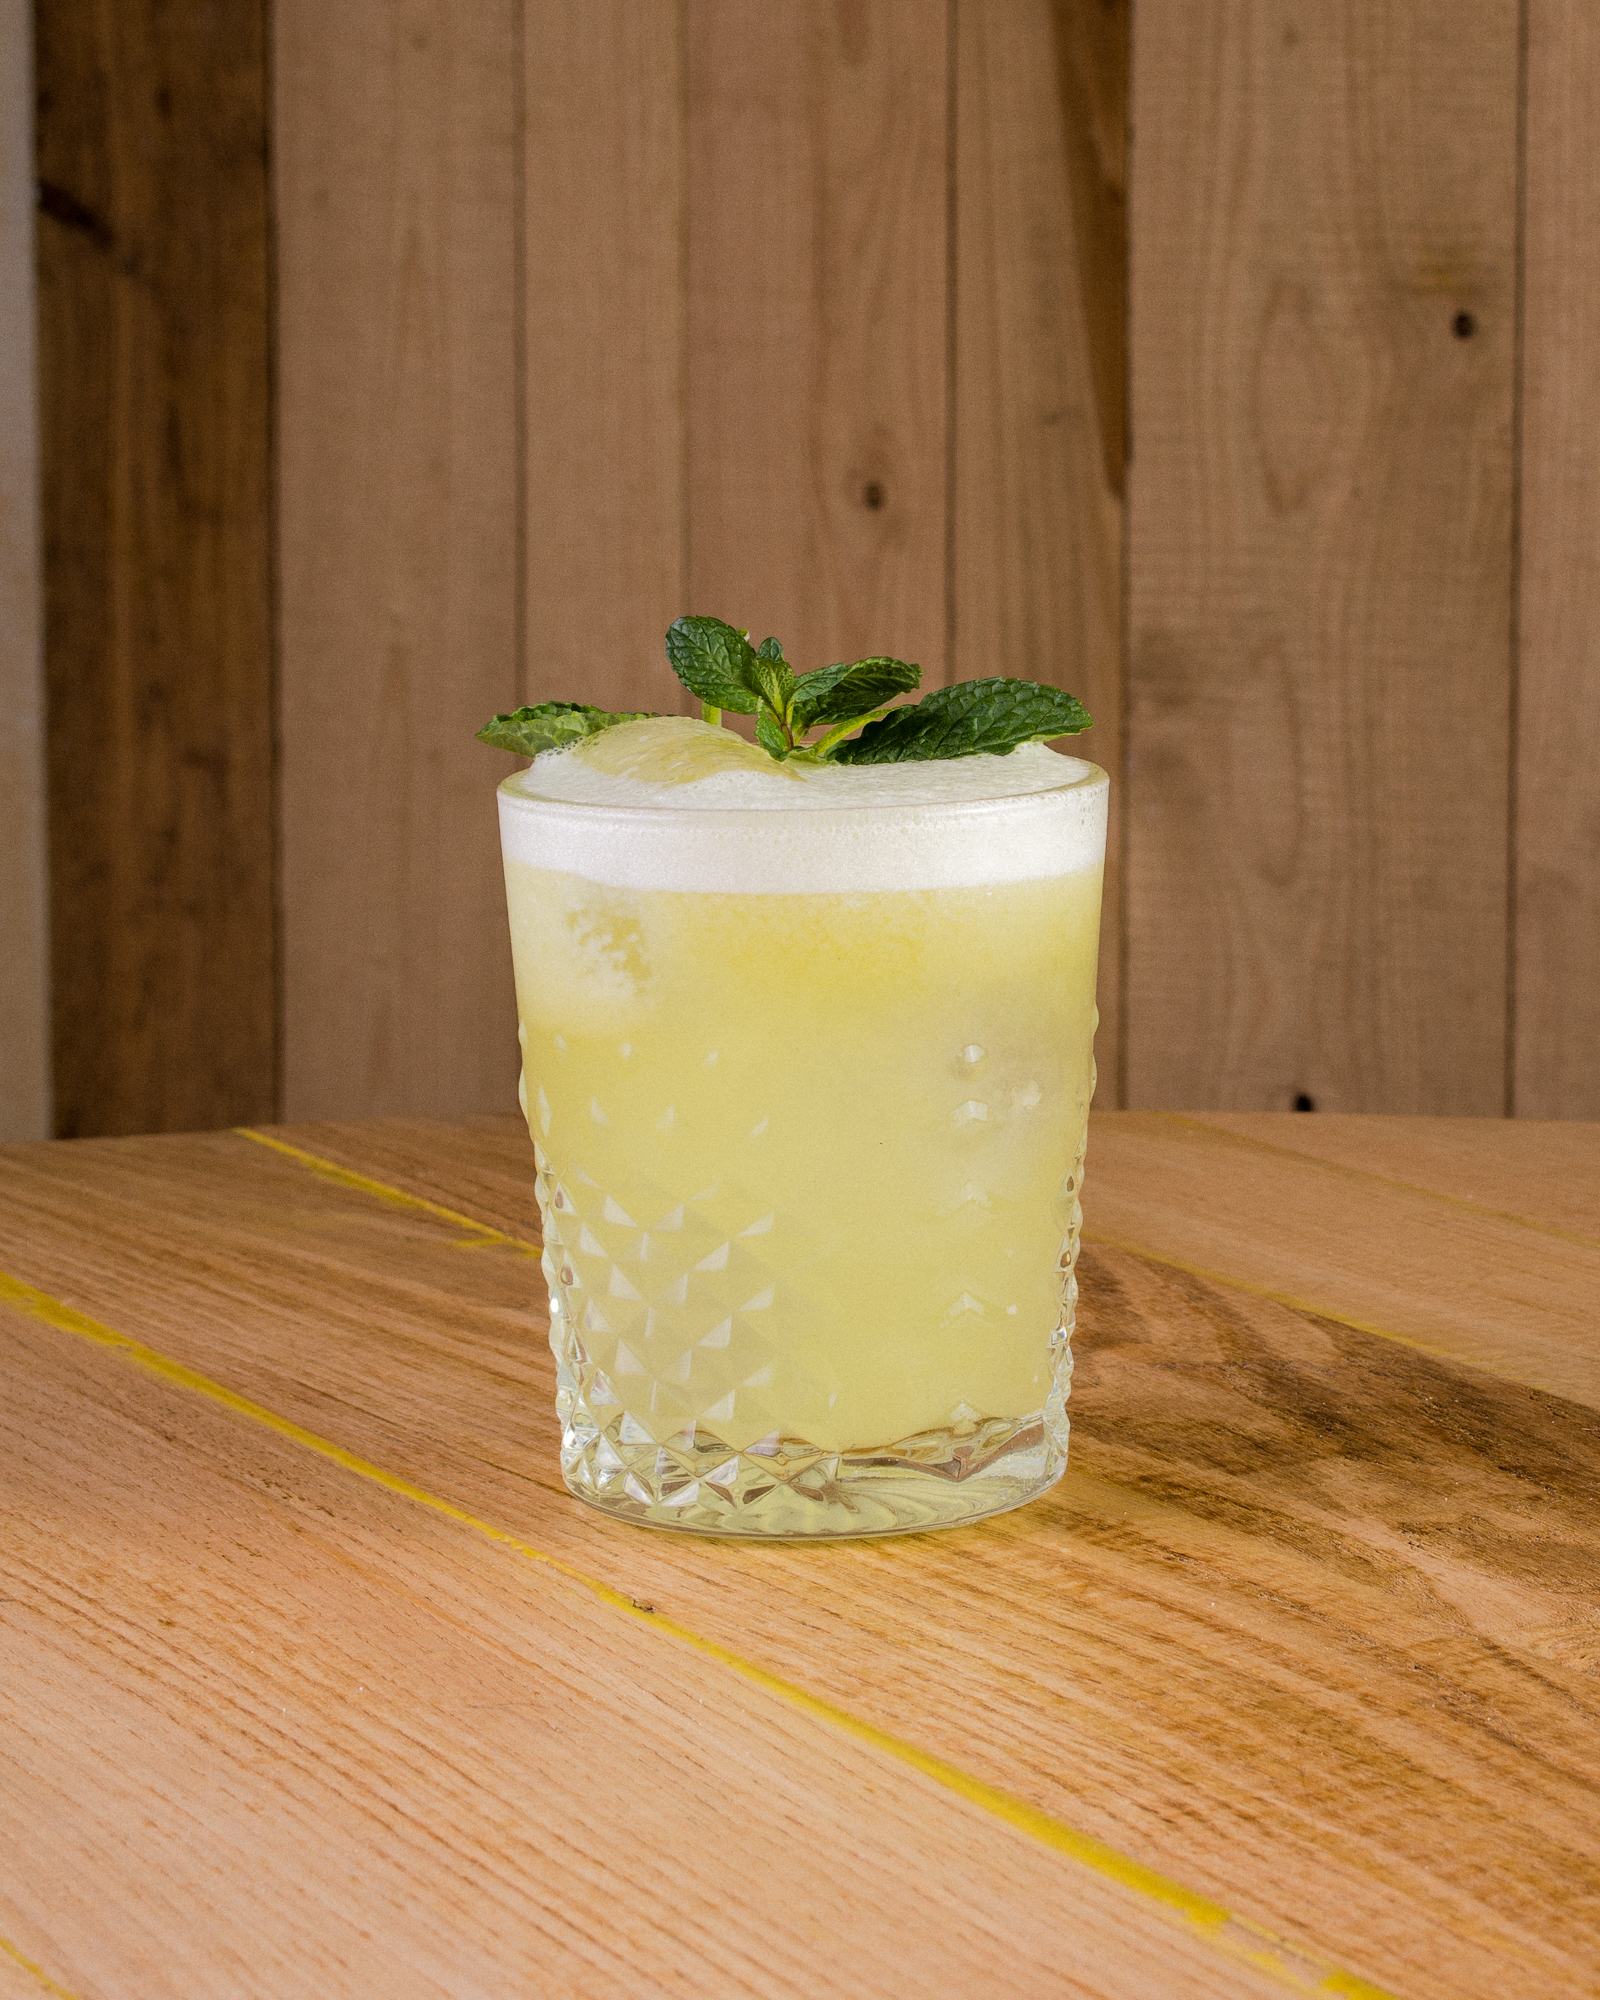 Verdoni   Green Soul, Mayan Spirit   Only natural ingredients: 50ml of VITA, 30ml of Mezcal (first Verdoni prepared with Mezcal Amores), 25ml of fresh lime juice, 20ml of Agave sirope, 25ml of organic apple purée, egg white (only organic eggs) and fresh mint.  The jungles of the Mexican SouthWest sing through your senses while enjoying this drink. Give in to your wildest instincts and dance through the night with smokey empowerment.